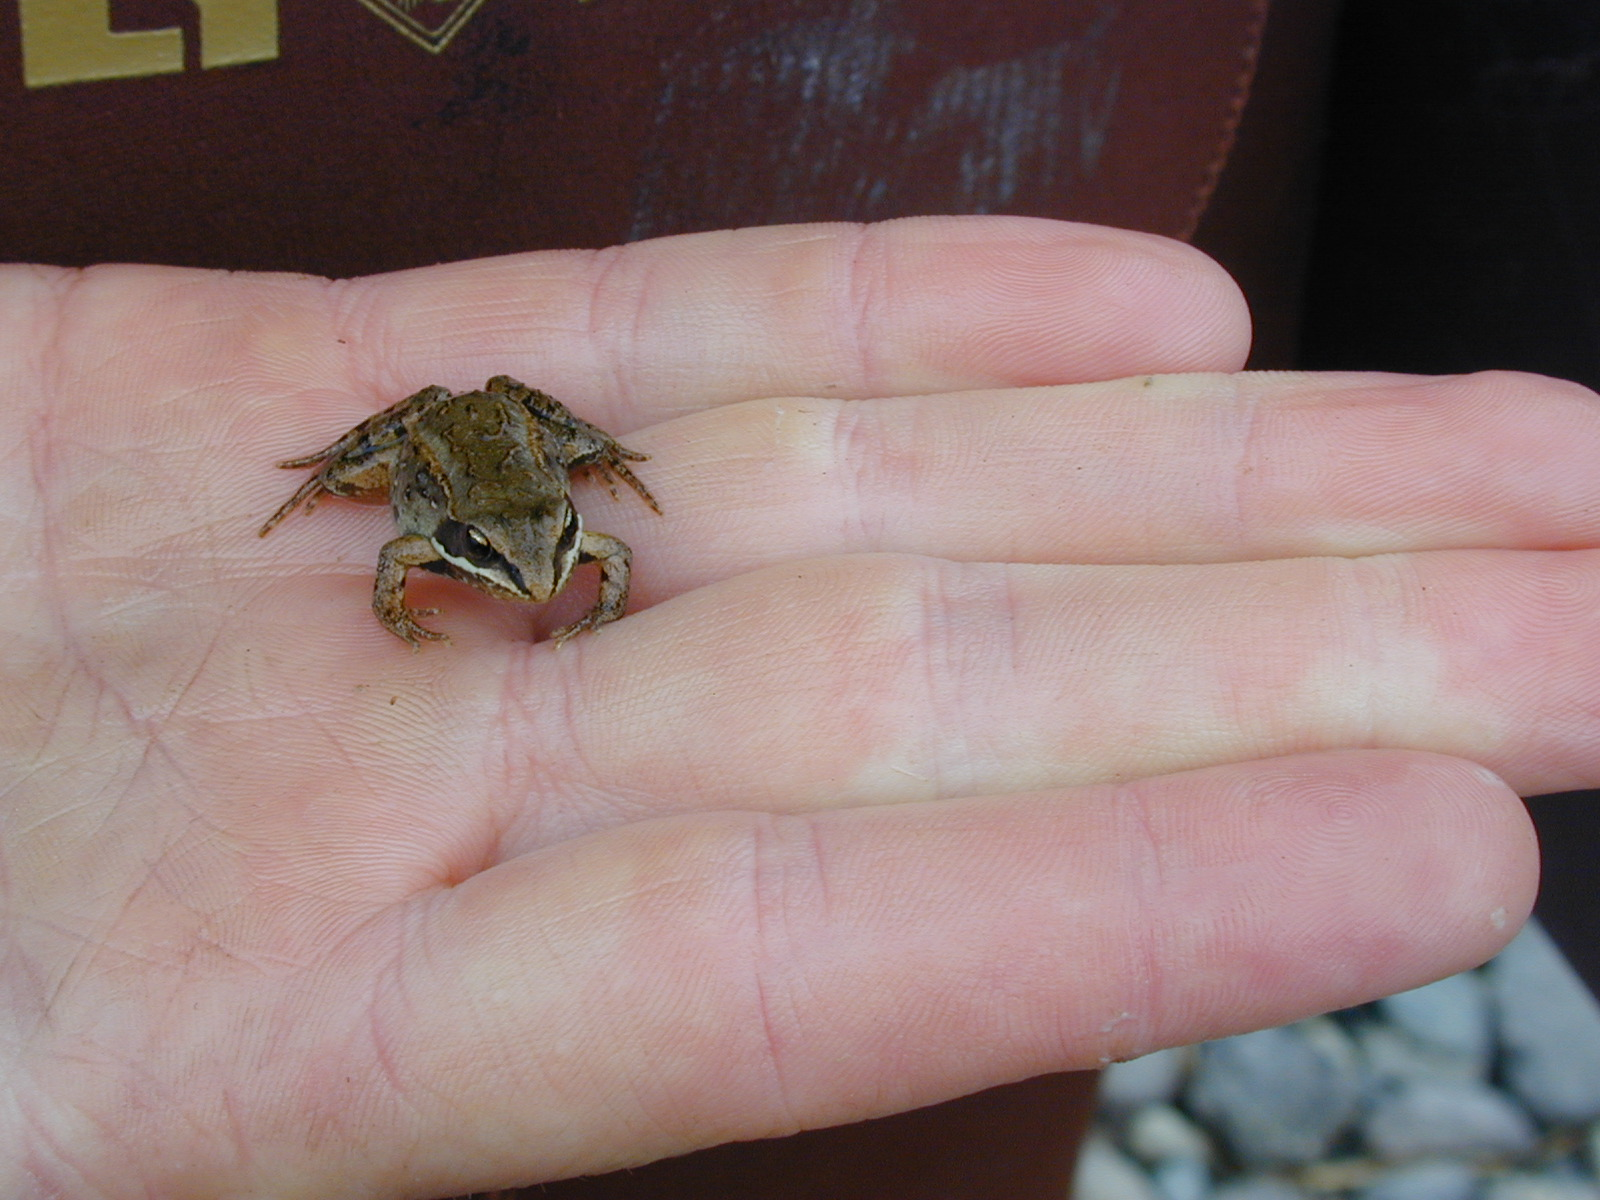 Adult  wood frog resting on a human hand.